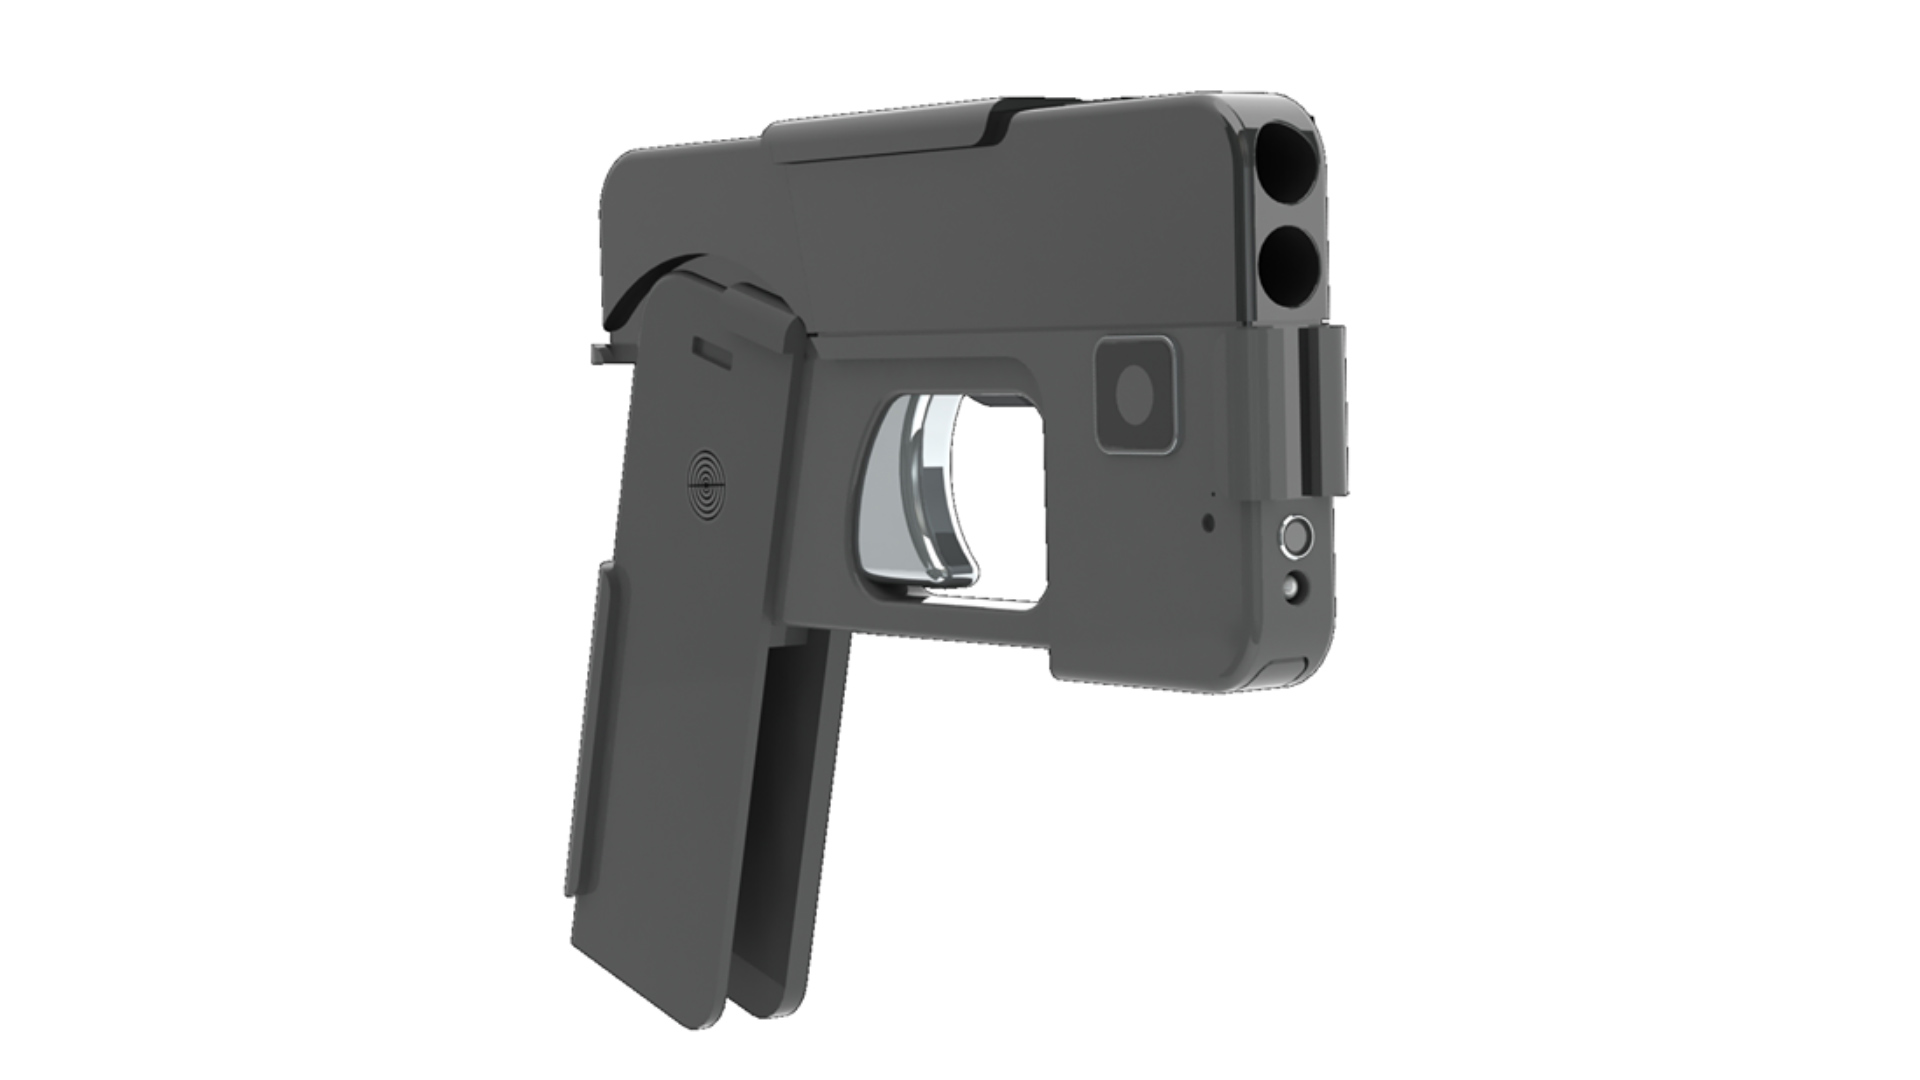 This Gun Looks Like a Cellphone